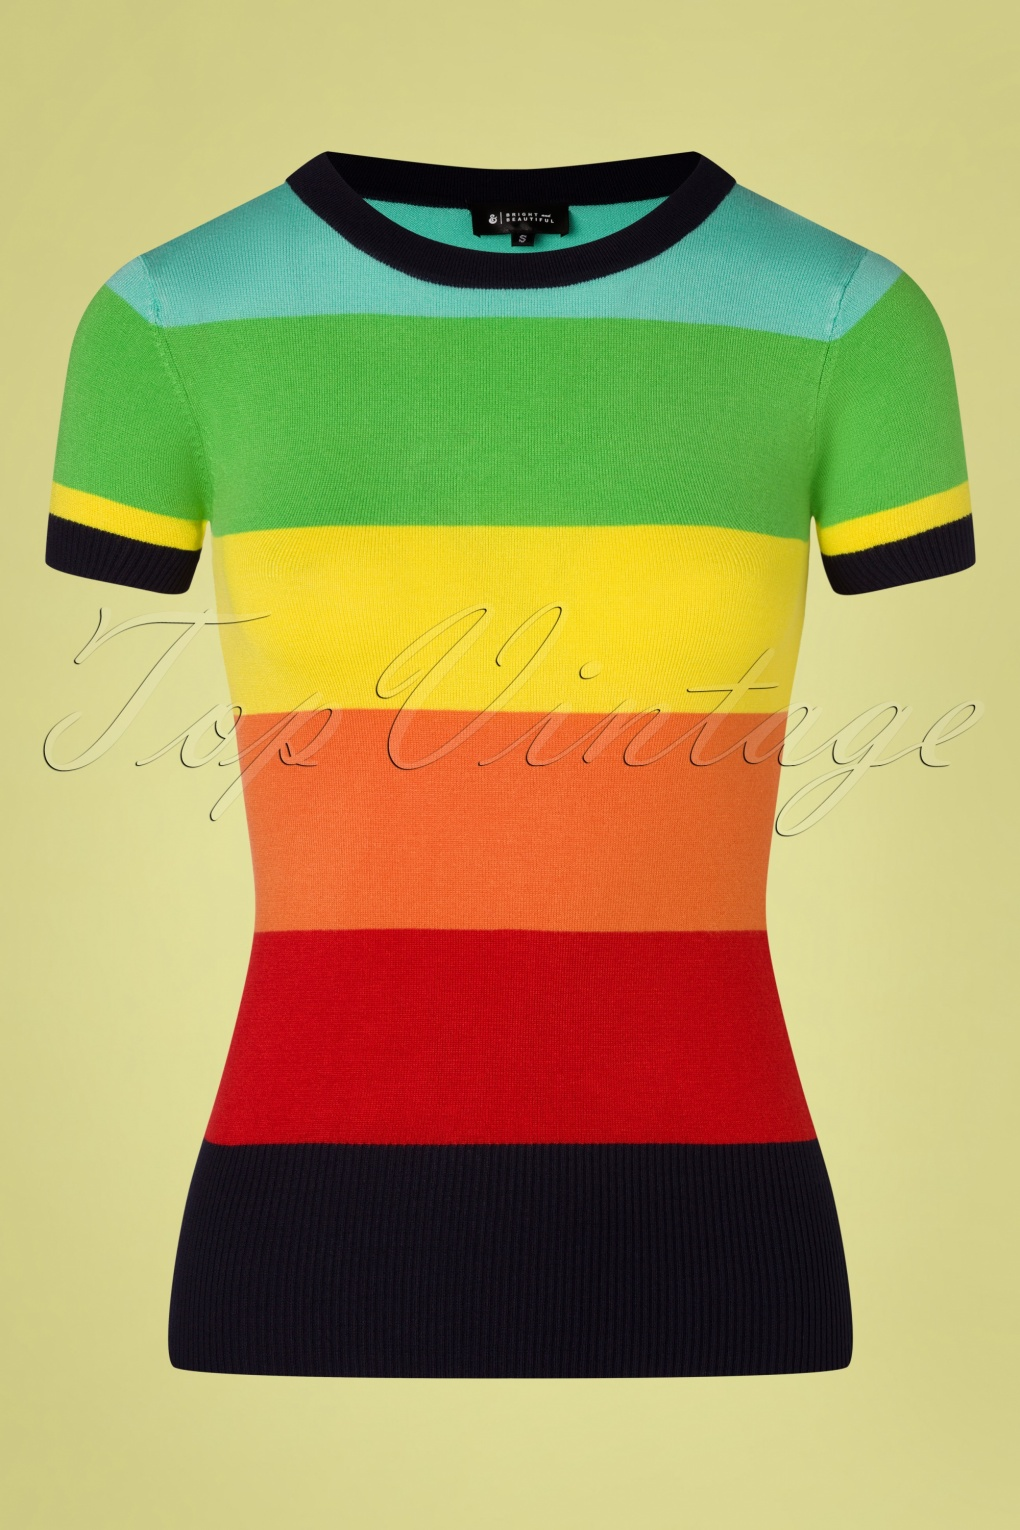 1970s Shirts, Tops, Blouses, T-Shirt Styles   History 60s Sydney Dreamer Top in Rainbow £38.26 AT vintagedancer.com